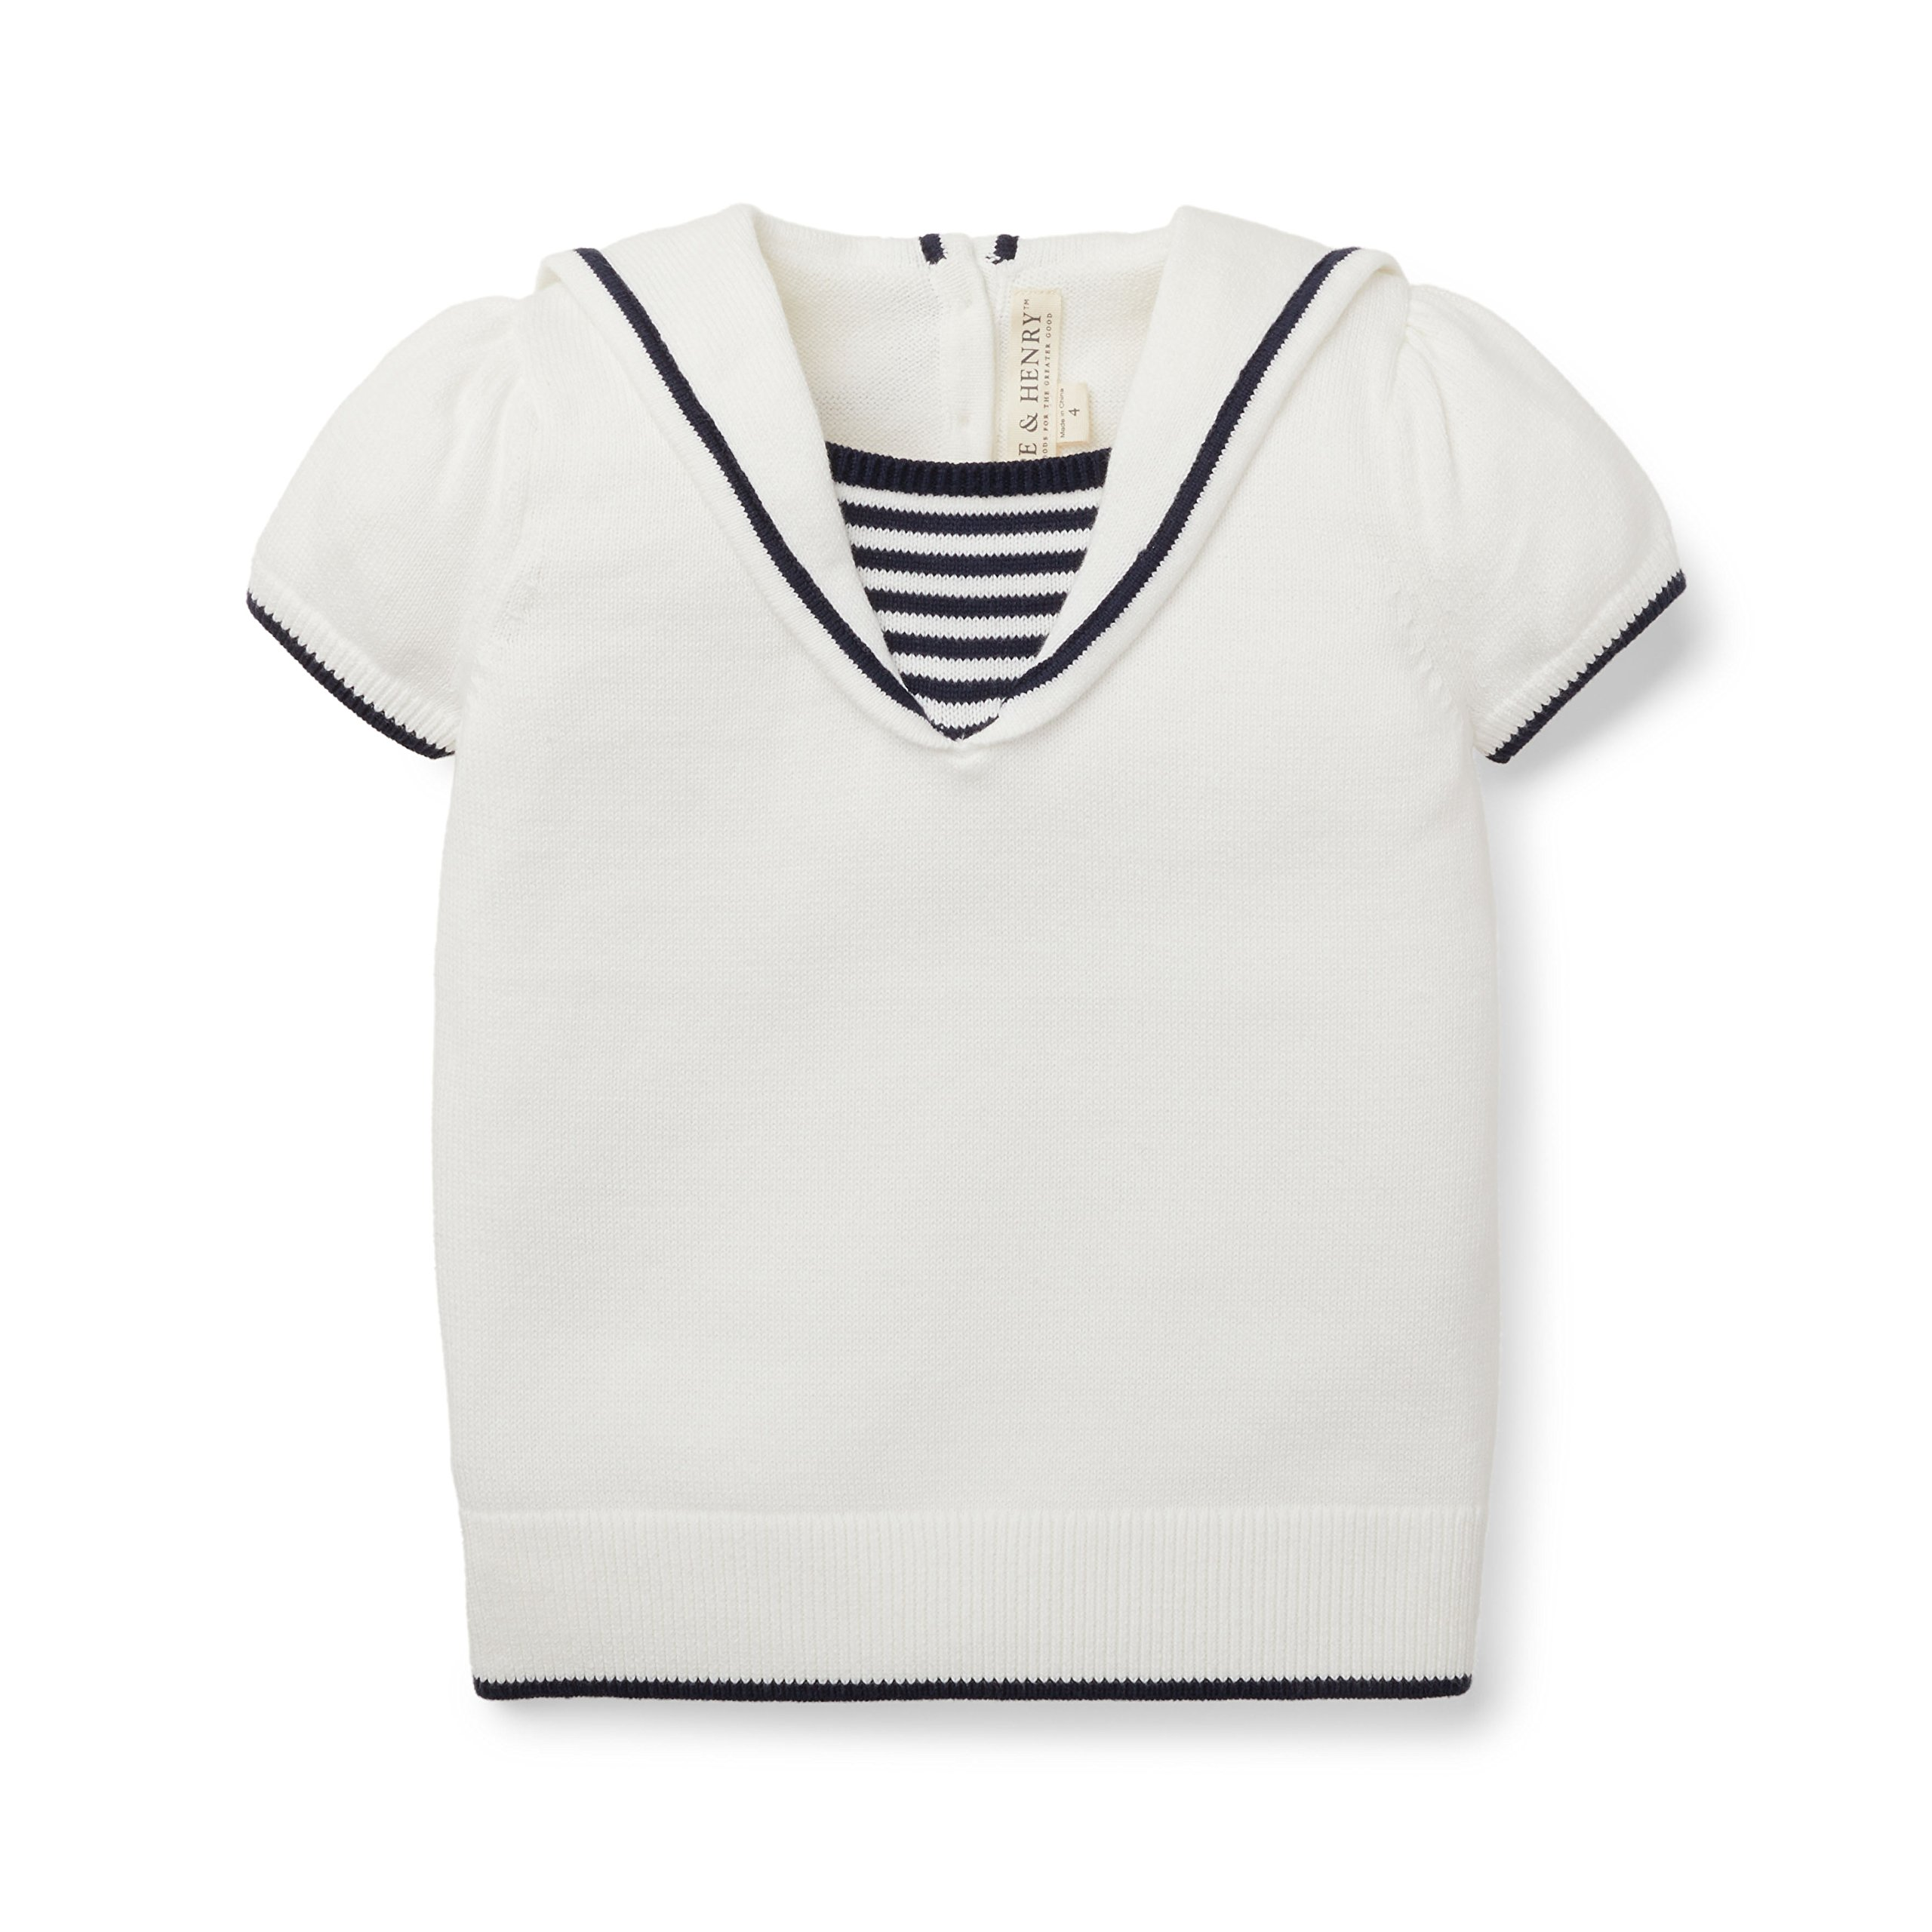 Hope and Henry Girls White Sailor Sweater Top Made With Organic Cotton by Hope & Henry (Image #1)